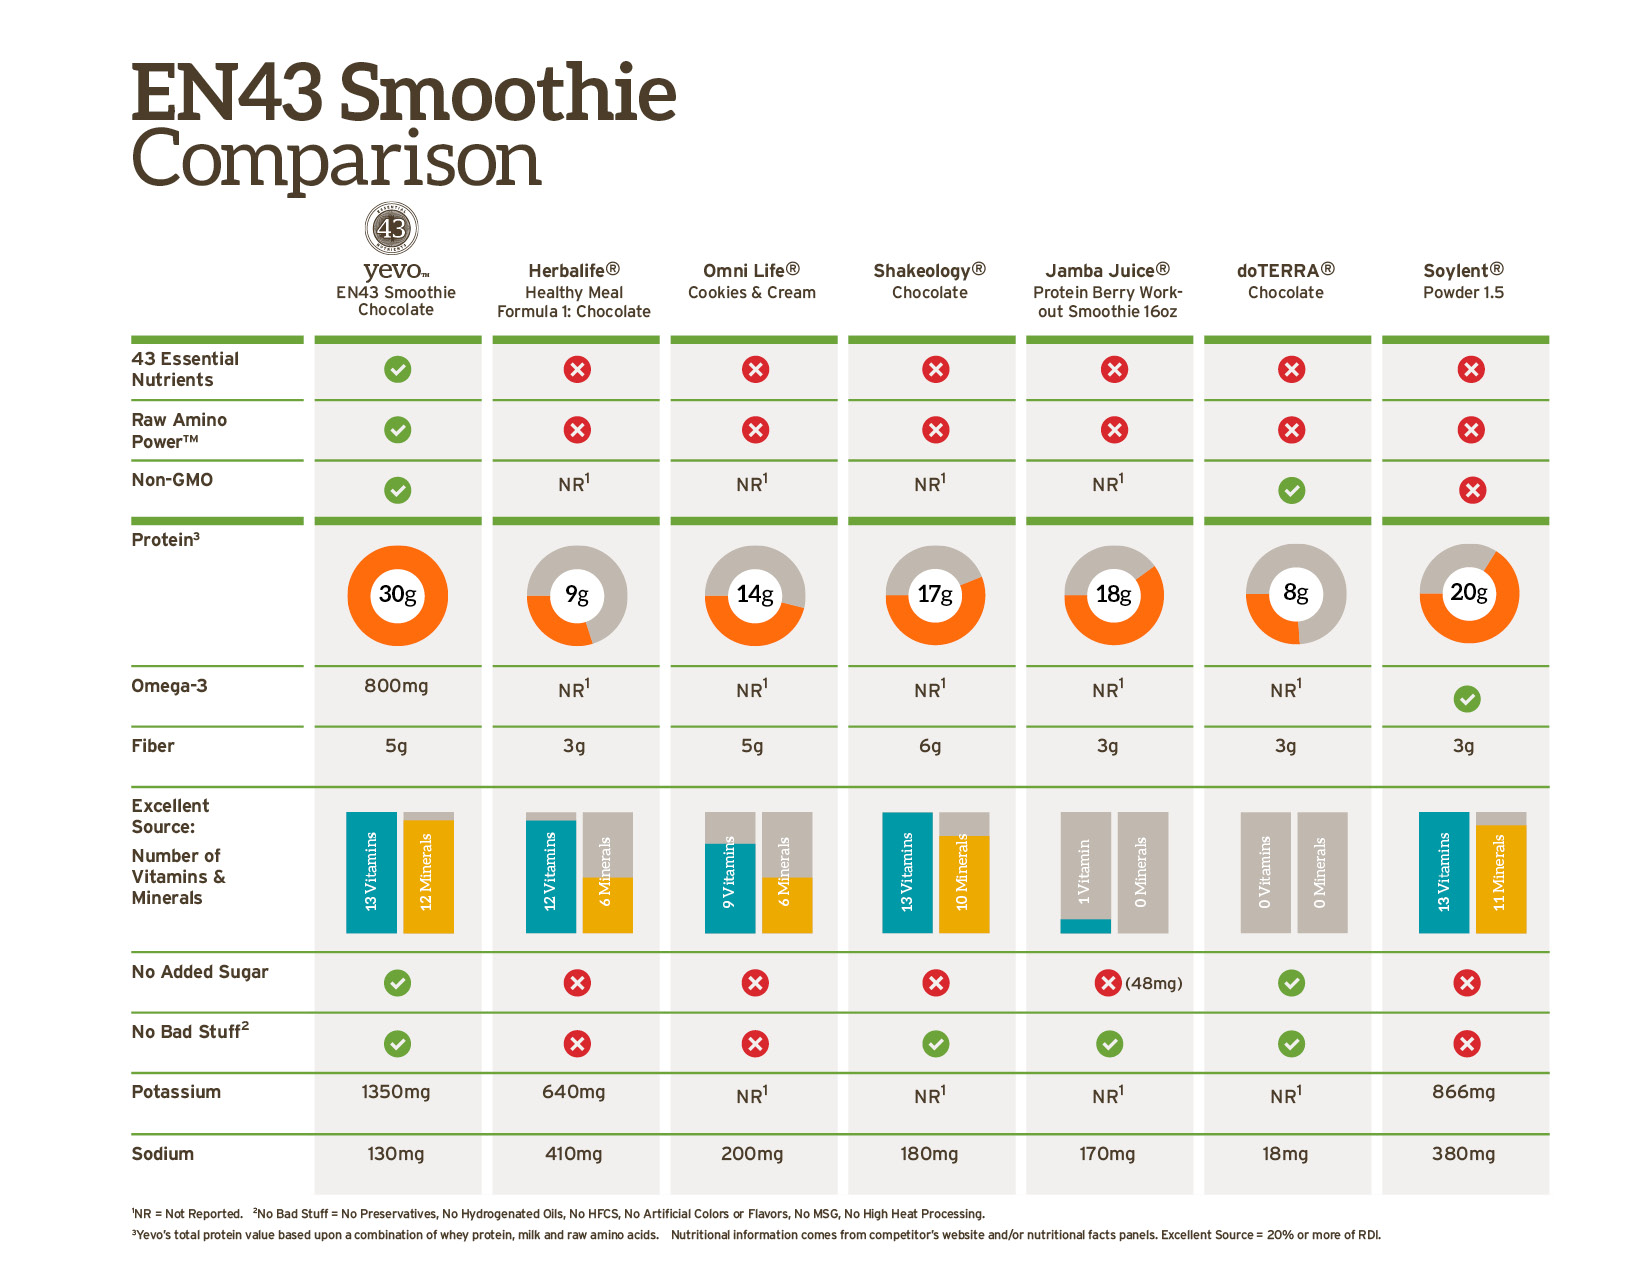 Yevo Smoothie comparison